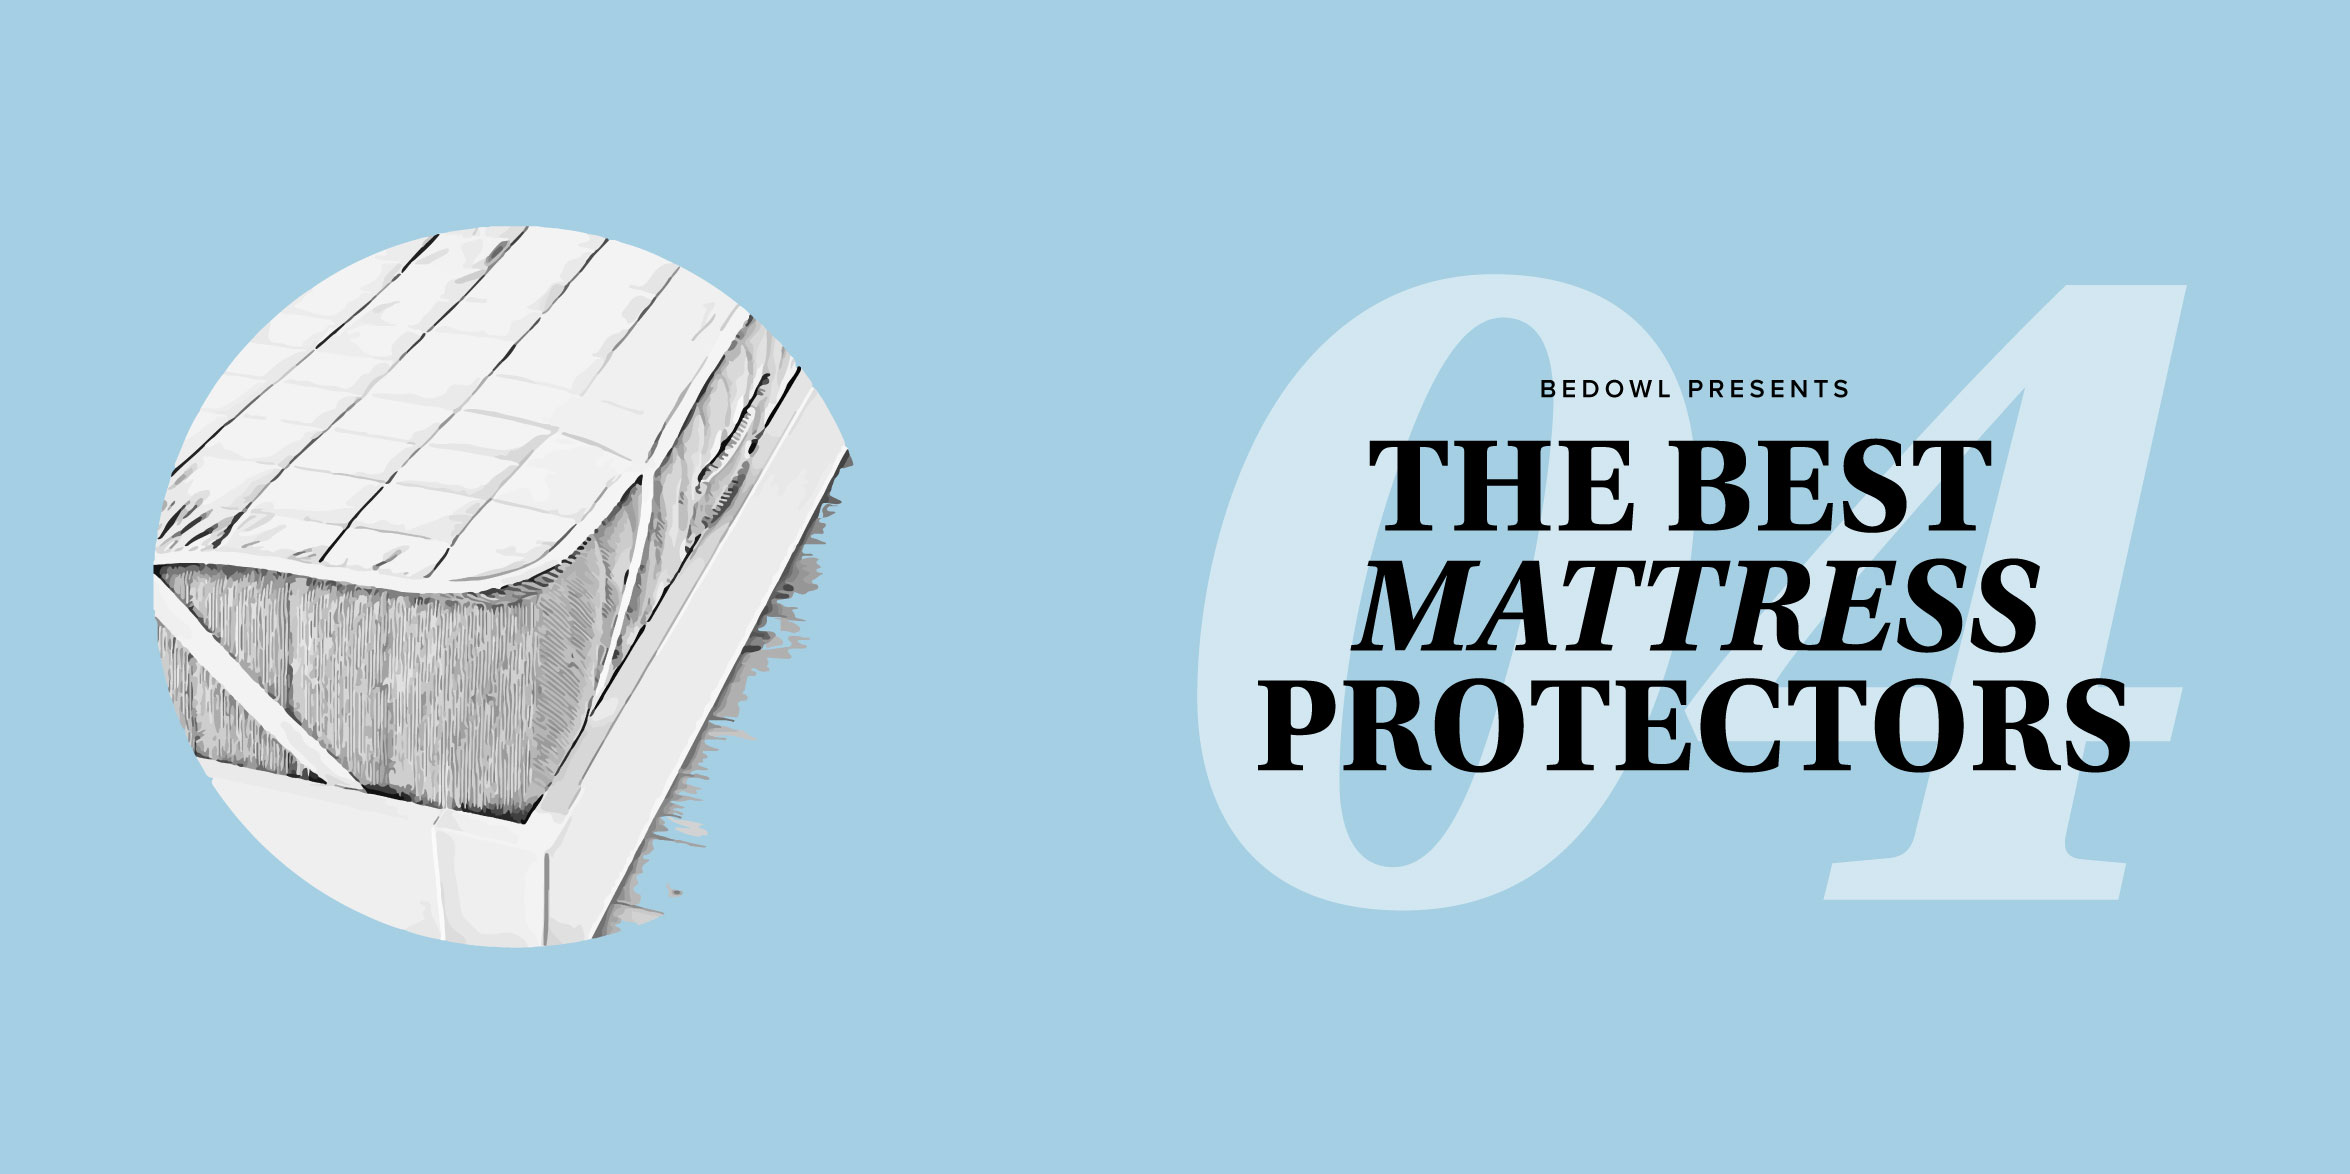 The Best Mattress Protector May 2017 — Reviews by Bedowl